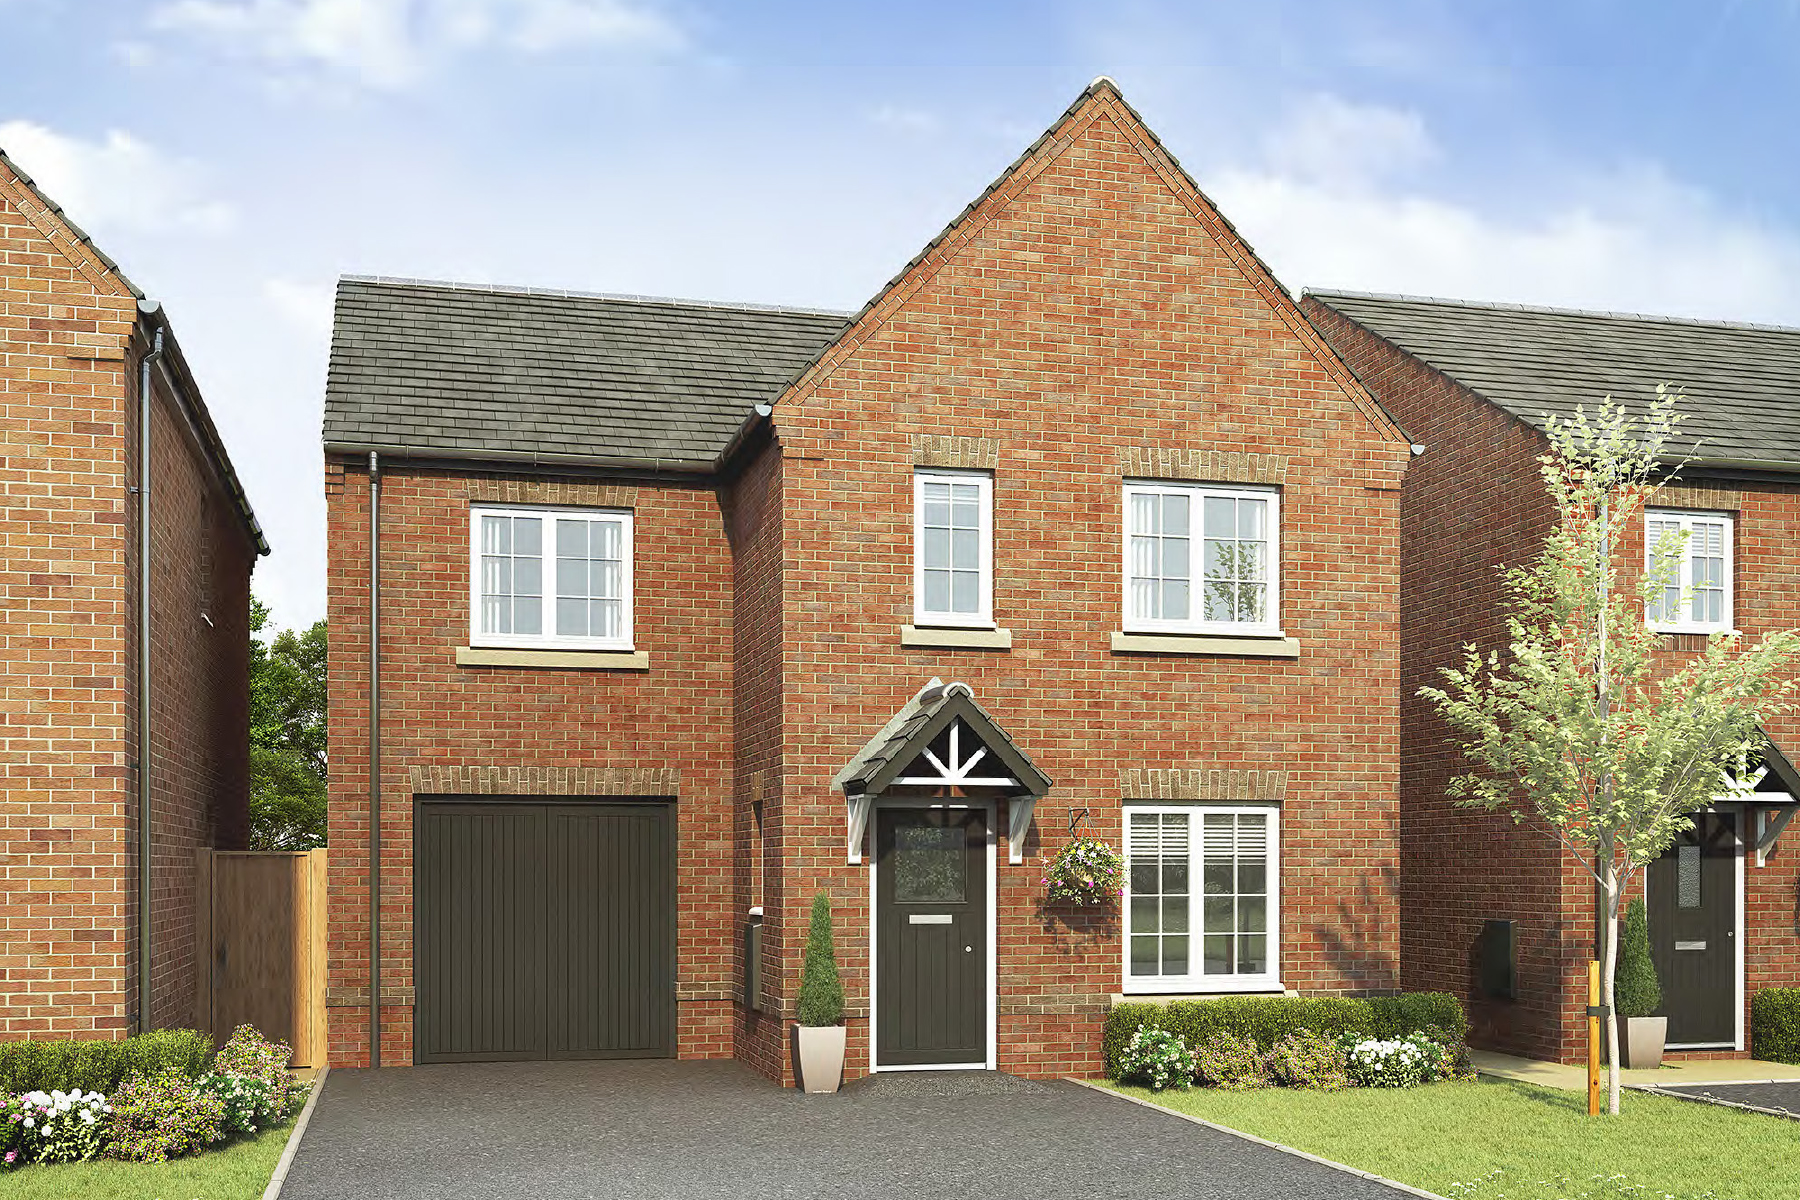 55410_TWY - Colliers Court P3-CGI-Amersham